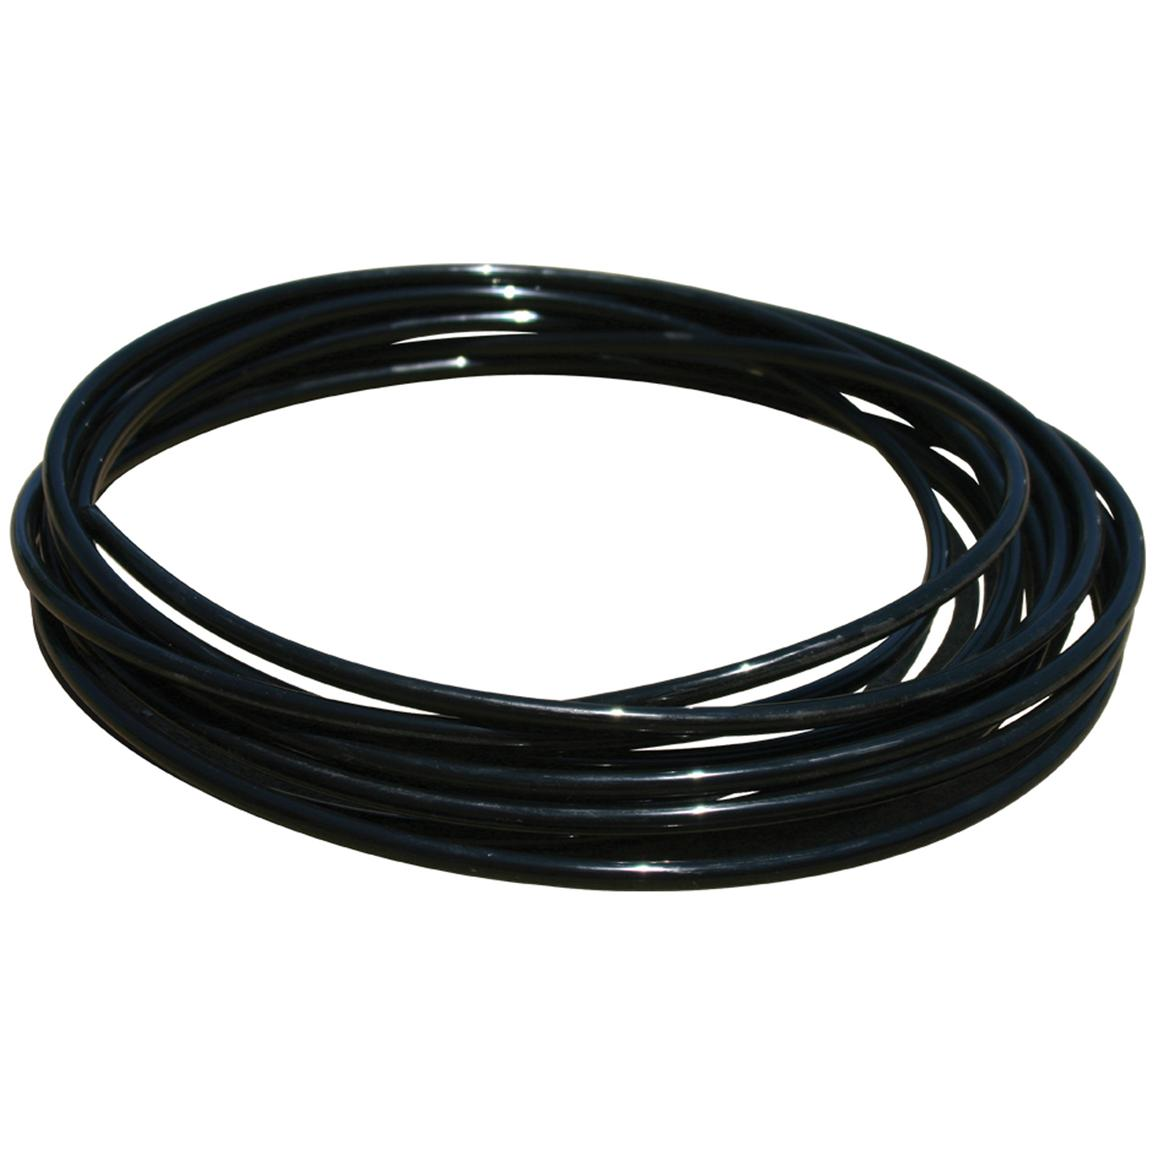 Outdoor Water Solutions® 100' of 1/2 inch Diffused Aeration Tubing